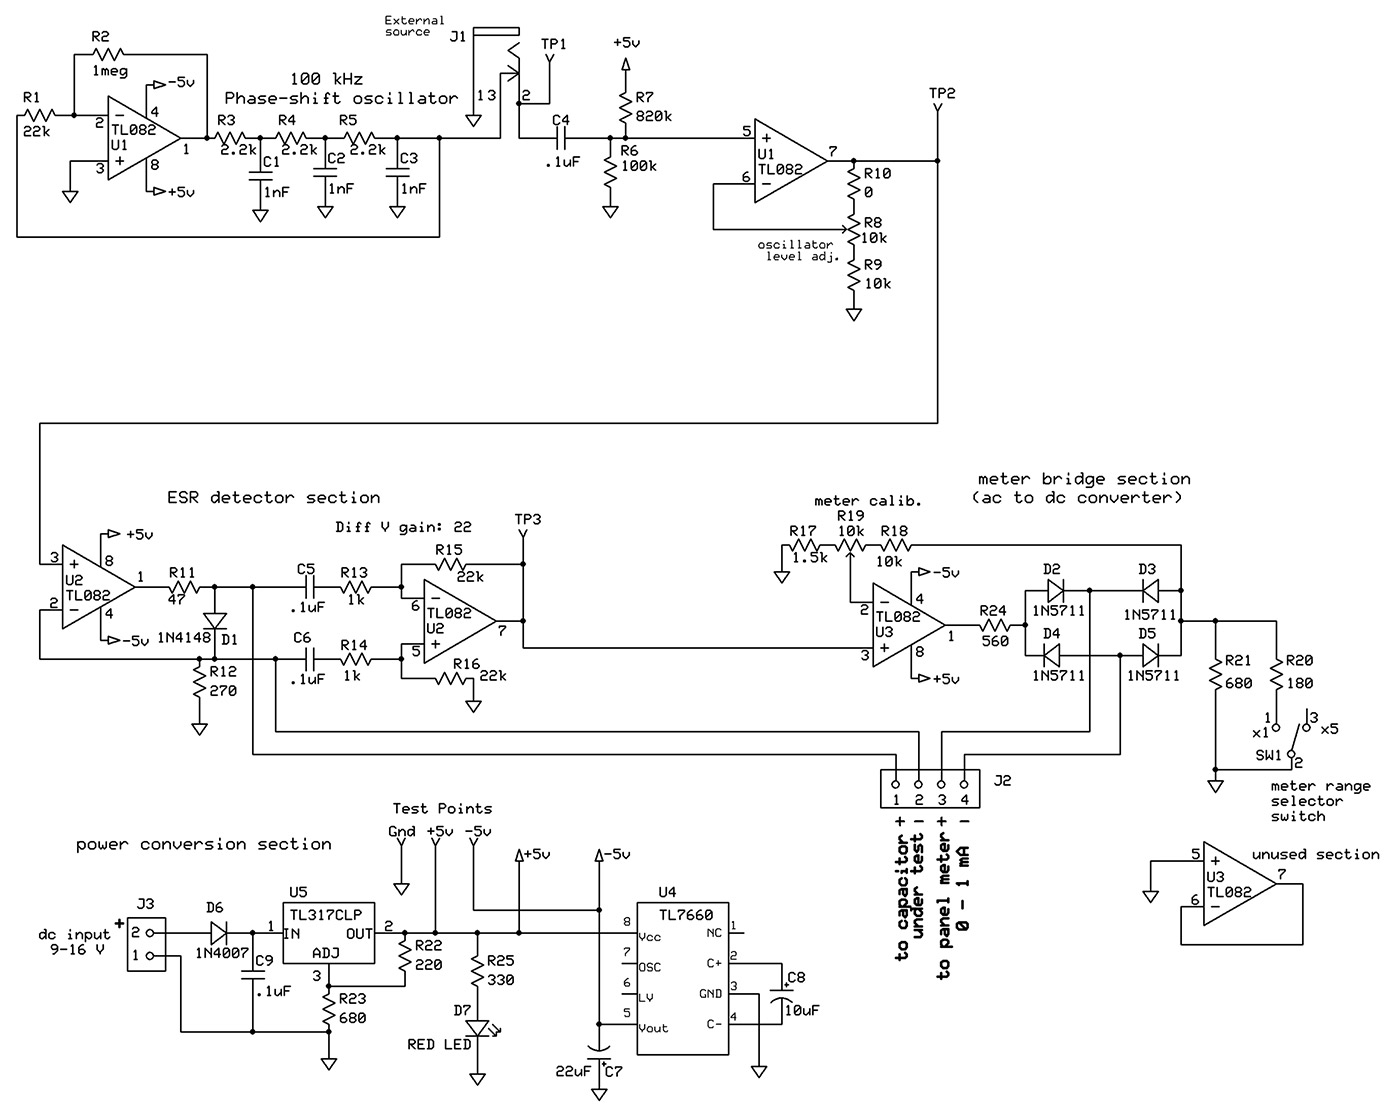 Updated Component Wiring Diagram Click On Components For Writeups